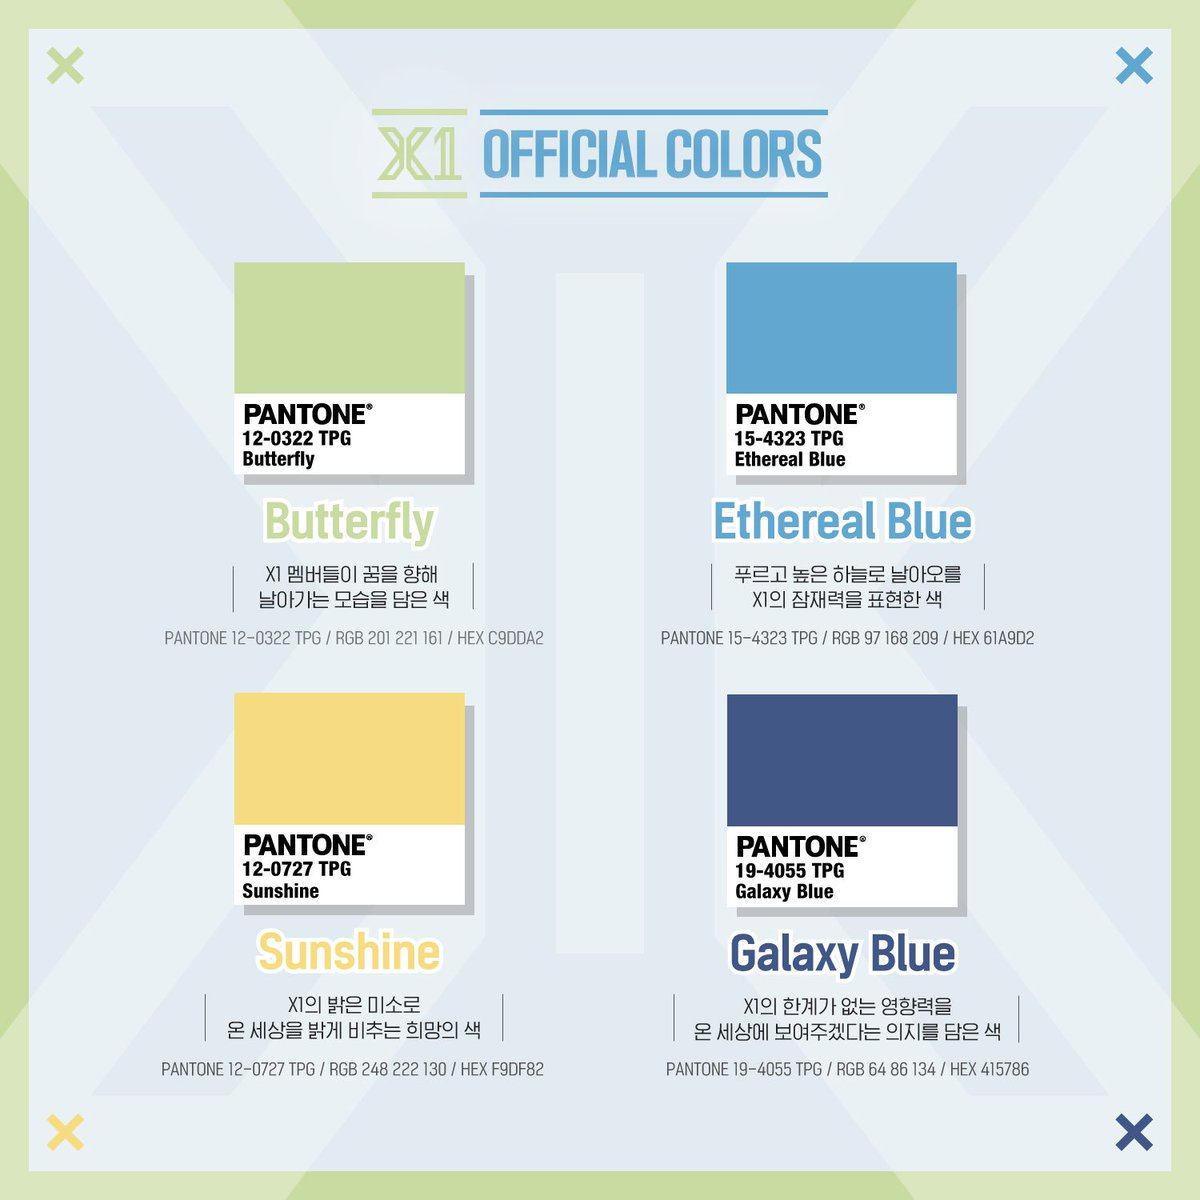 Replying to @x1official101: [NOTICE] X1 OFFICIAL COLORS  #X1 #엑스원